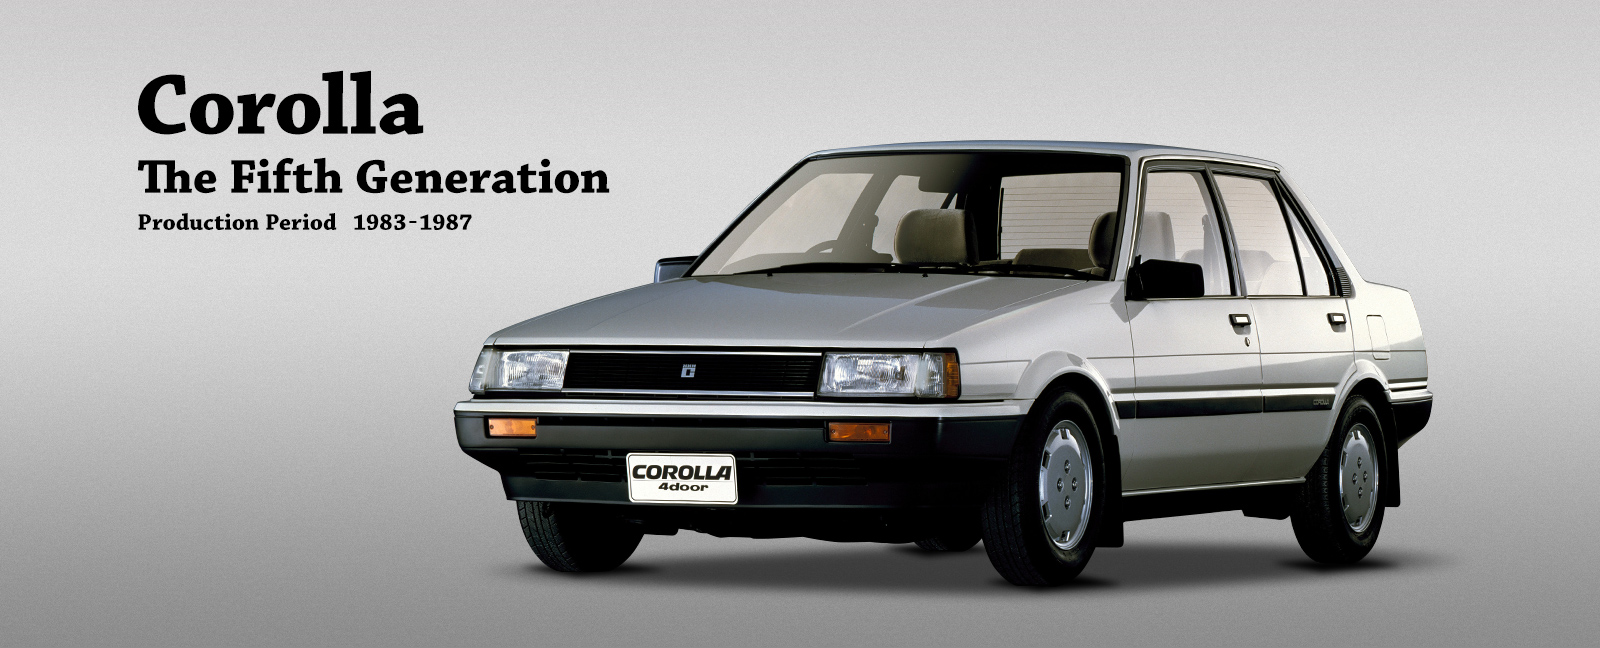 Corolla The Fifth Generation Find out more